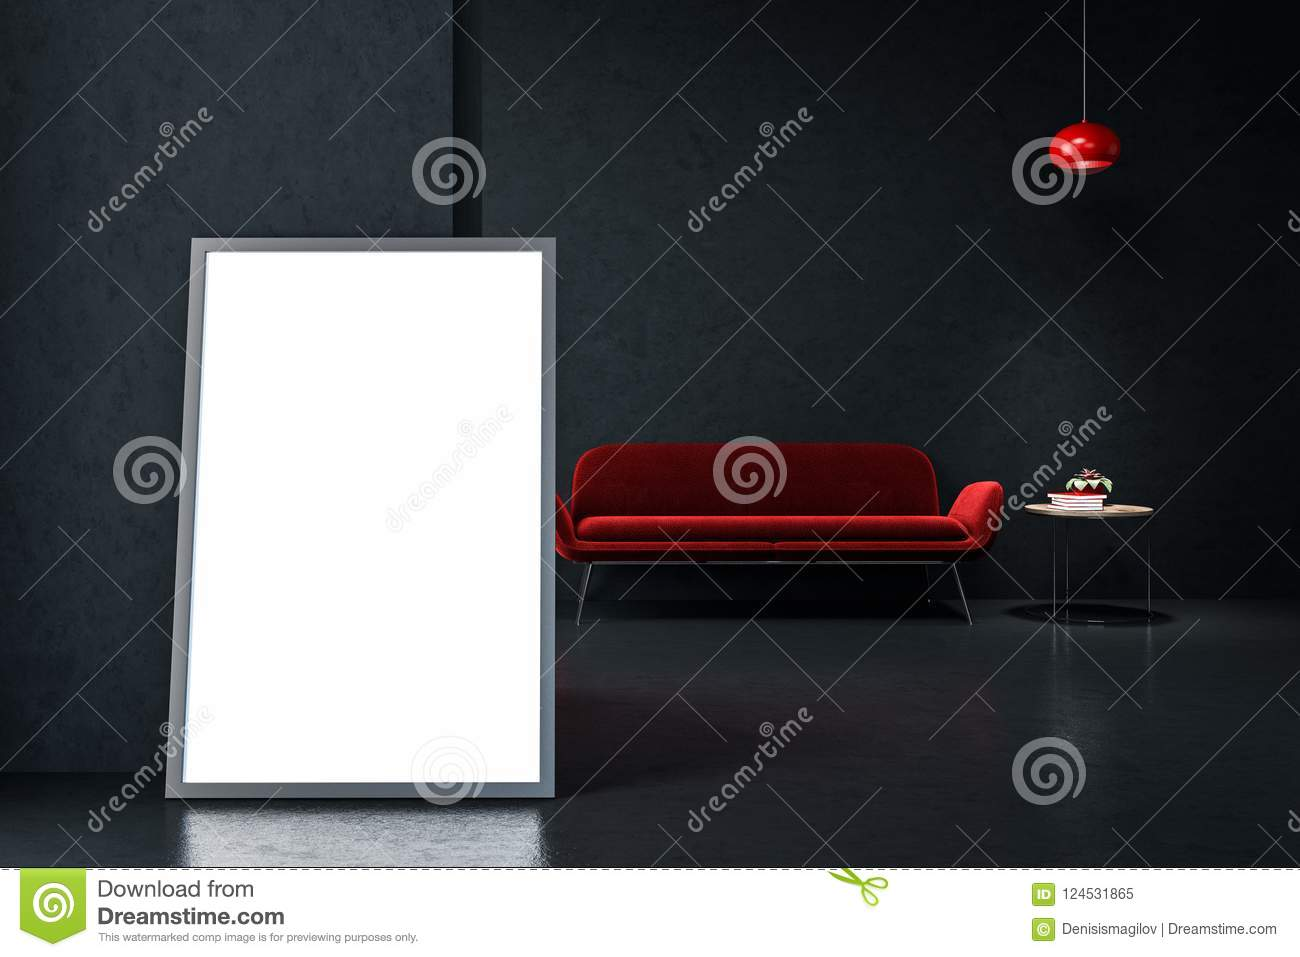 Astonishing Red Sofa In Empty Black Living Room Poster Stock Download Free Architecture Designs Scobabritishbridgeorg